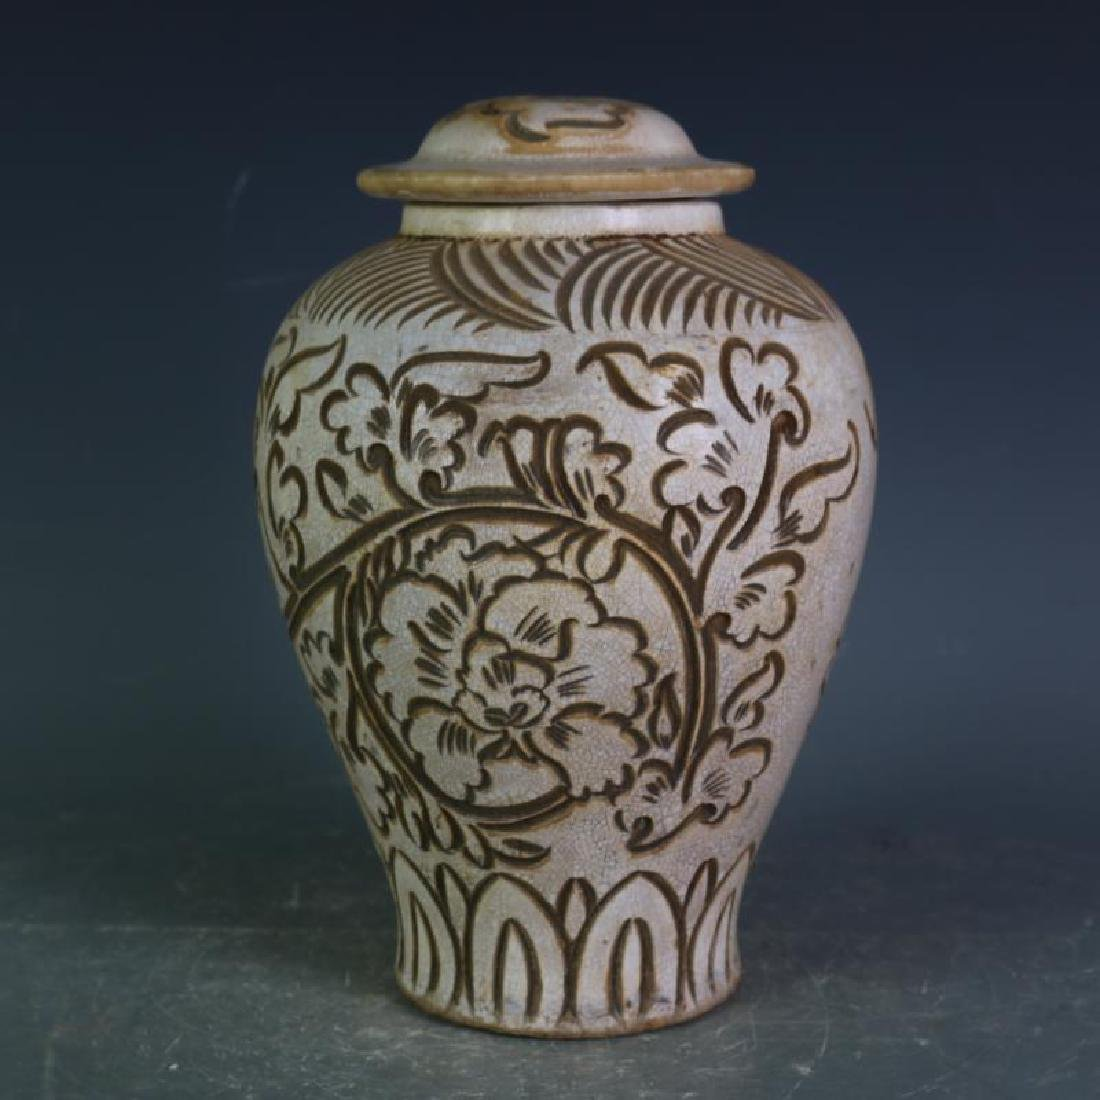 Chinese Song Dynasty Cizhou Ware Porcelain Ewer With